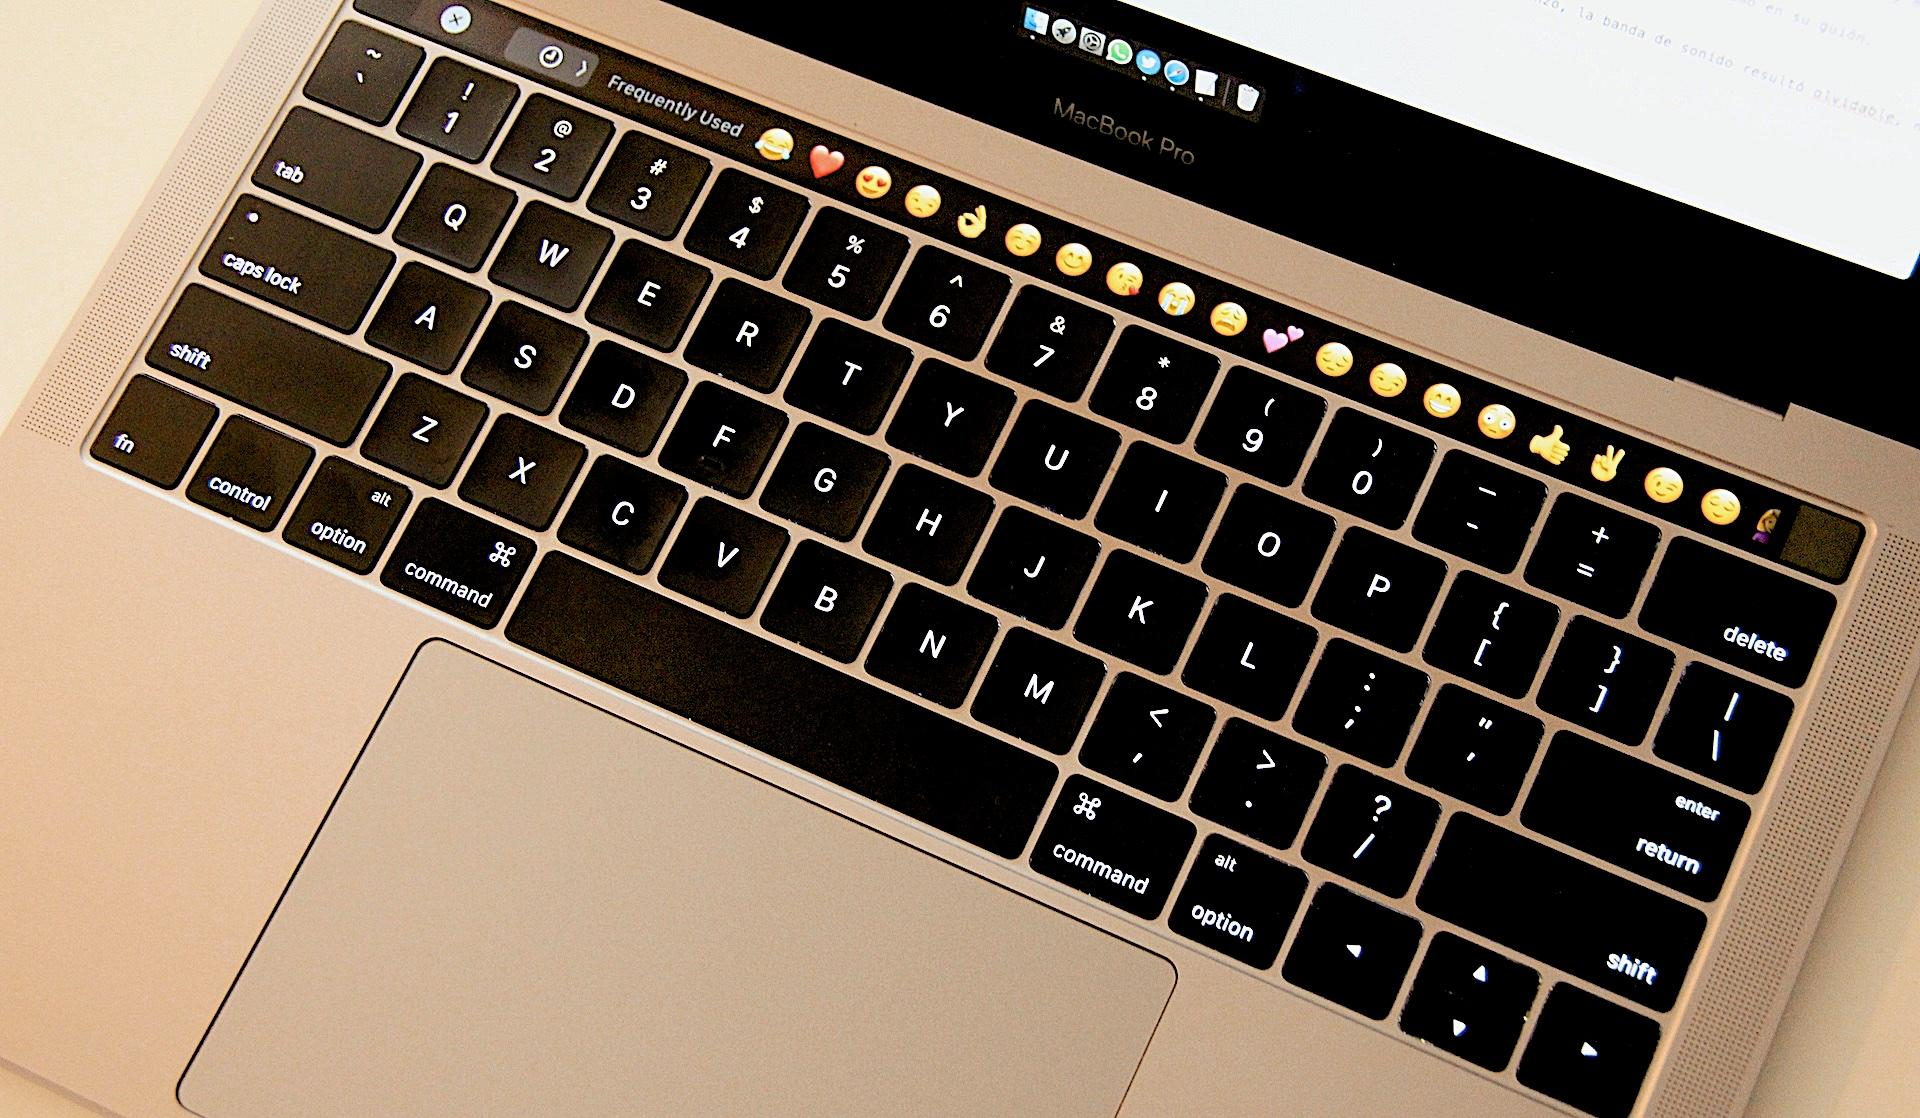 macbook-pro-touchbar-review-19122016-norberto-sica-in6